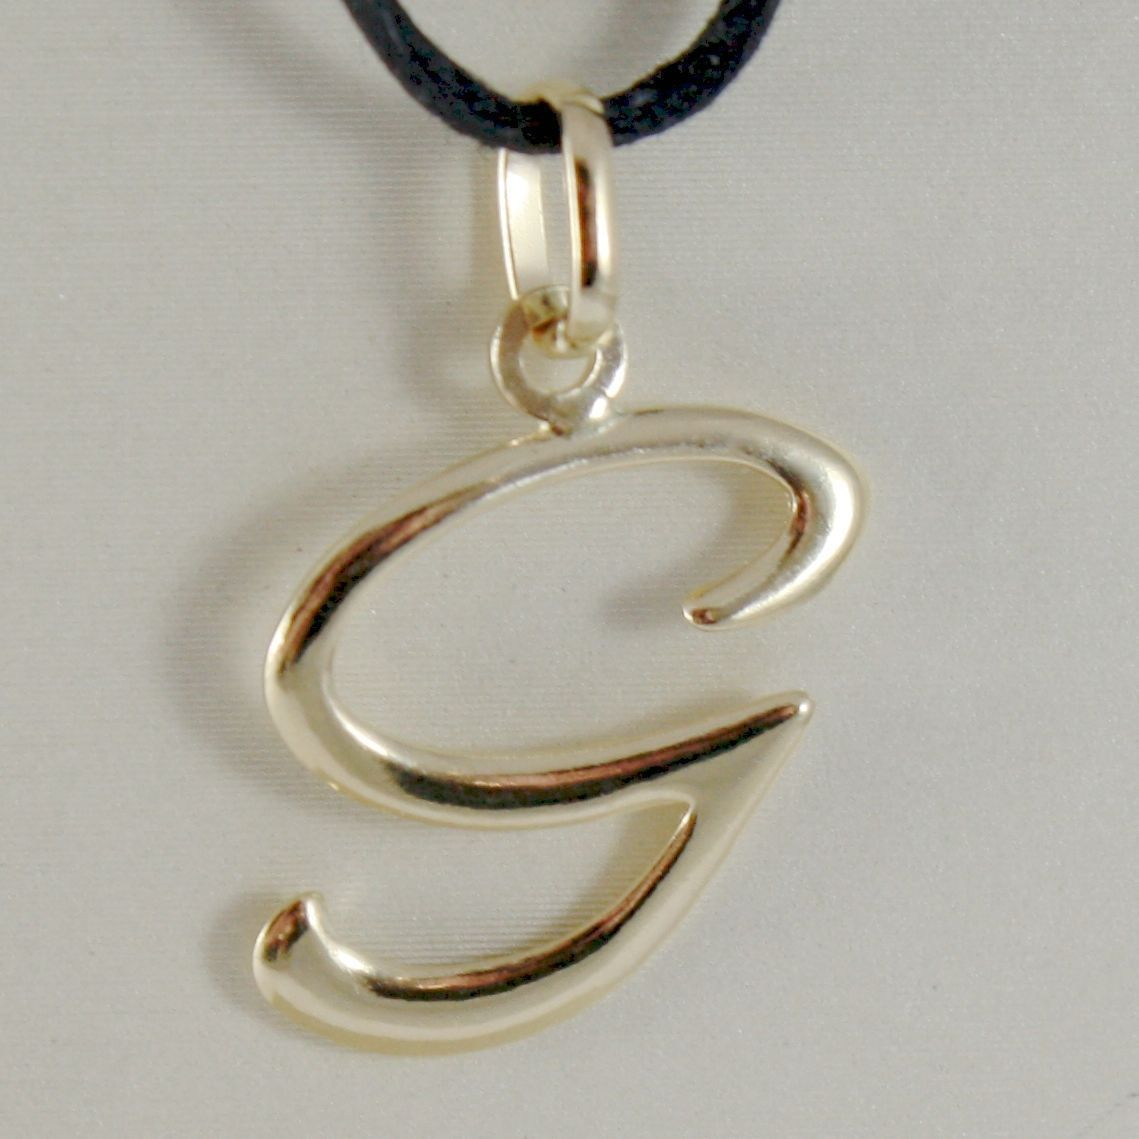 PENDANT YELLOW GOLD 18K WITH INITIAL G LETTER G LUCIDA 2,5 CM WITH CORD